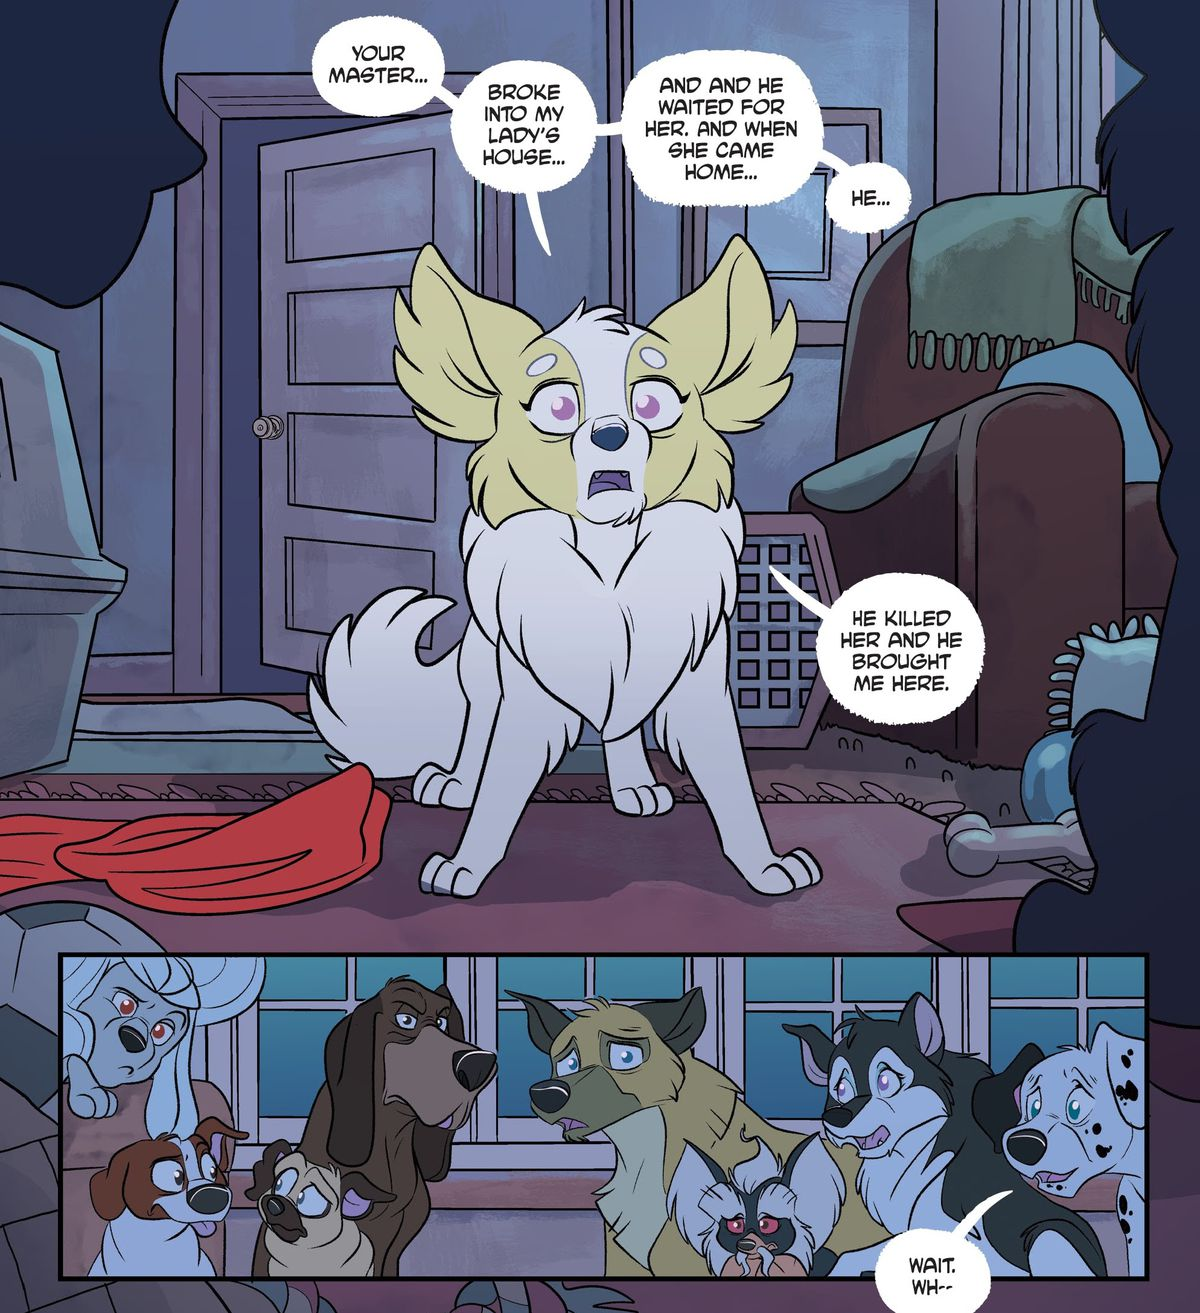 """""""Your master,"""" says a small fluffy dog, """"Broke into my lady's house... and and he waited for her. And when she came home ... he... he killed her and he brought me here."""" A group of other dogs regard her with worry, confusion, and suspicion, in Stray Dogs #1, Image Comics (2021)."""